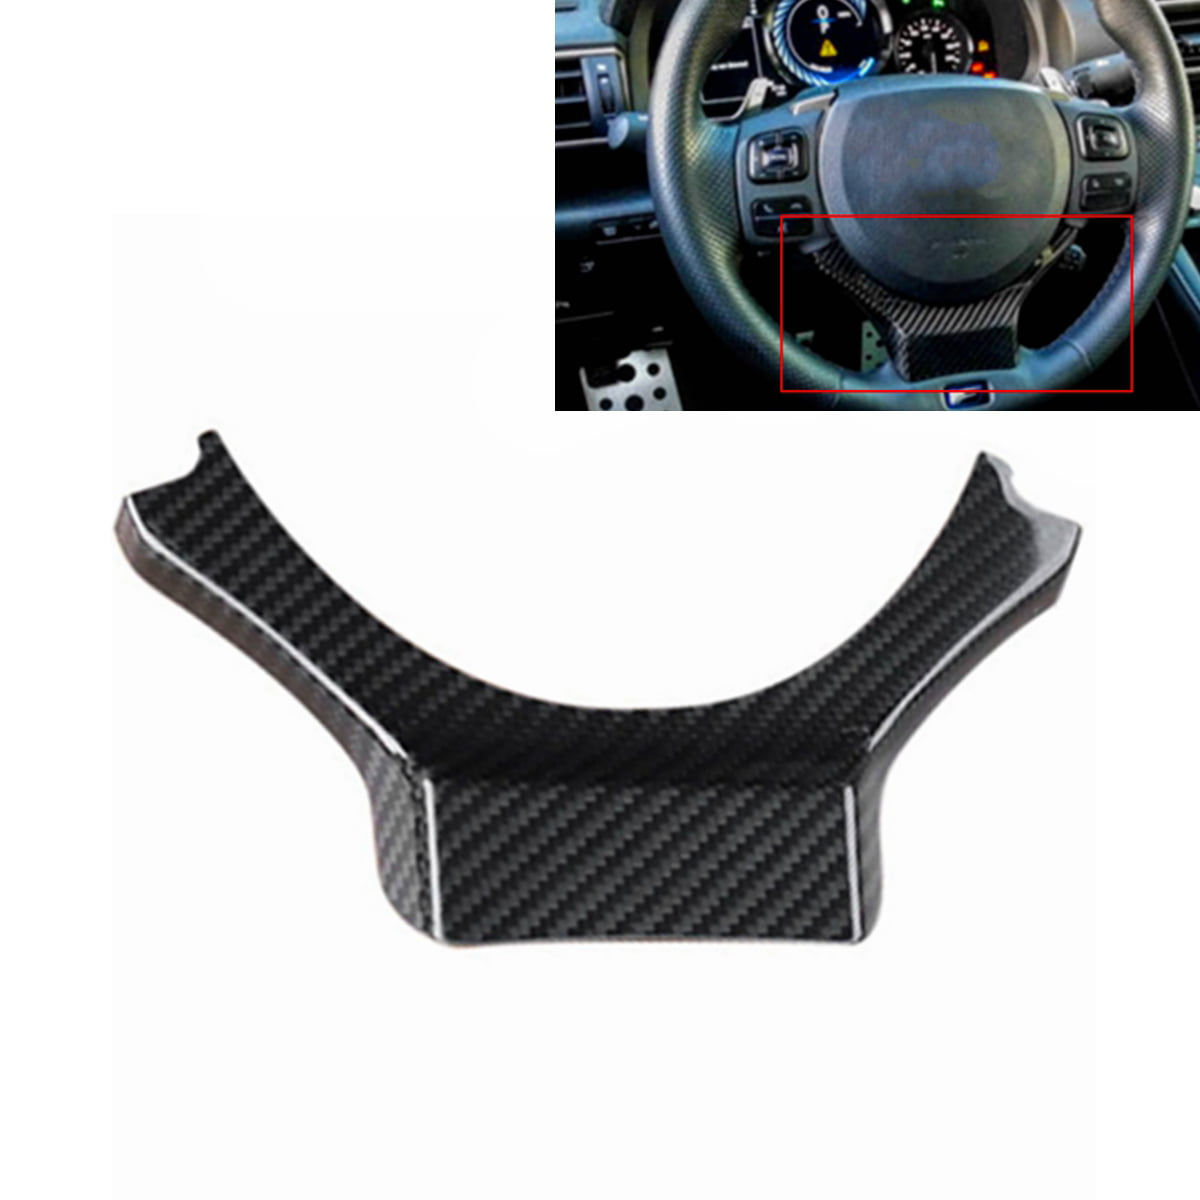 RJJX Fit For Lexus NX 2015-2019 1PC Carbon Fiber ABS Car Interior Steering Wheel Cover Trim Moldings Car Styling Accessories Color Name : Wood